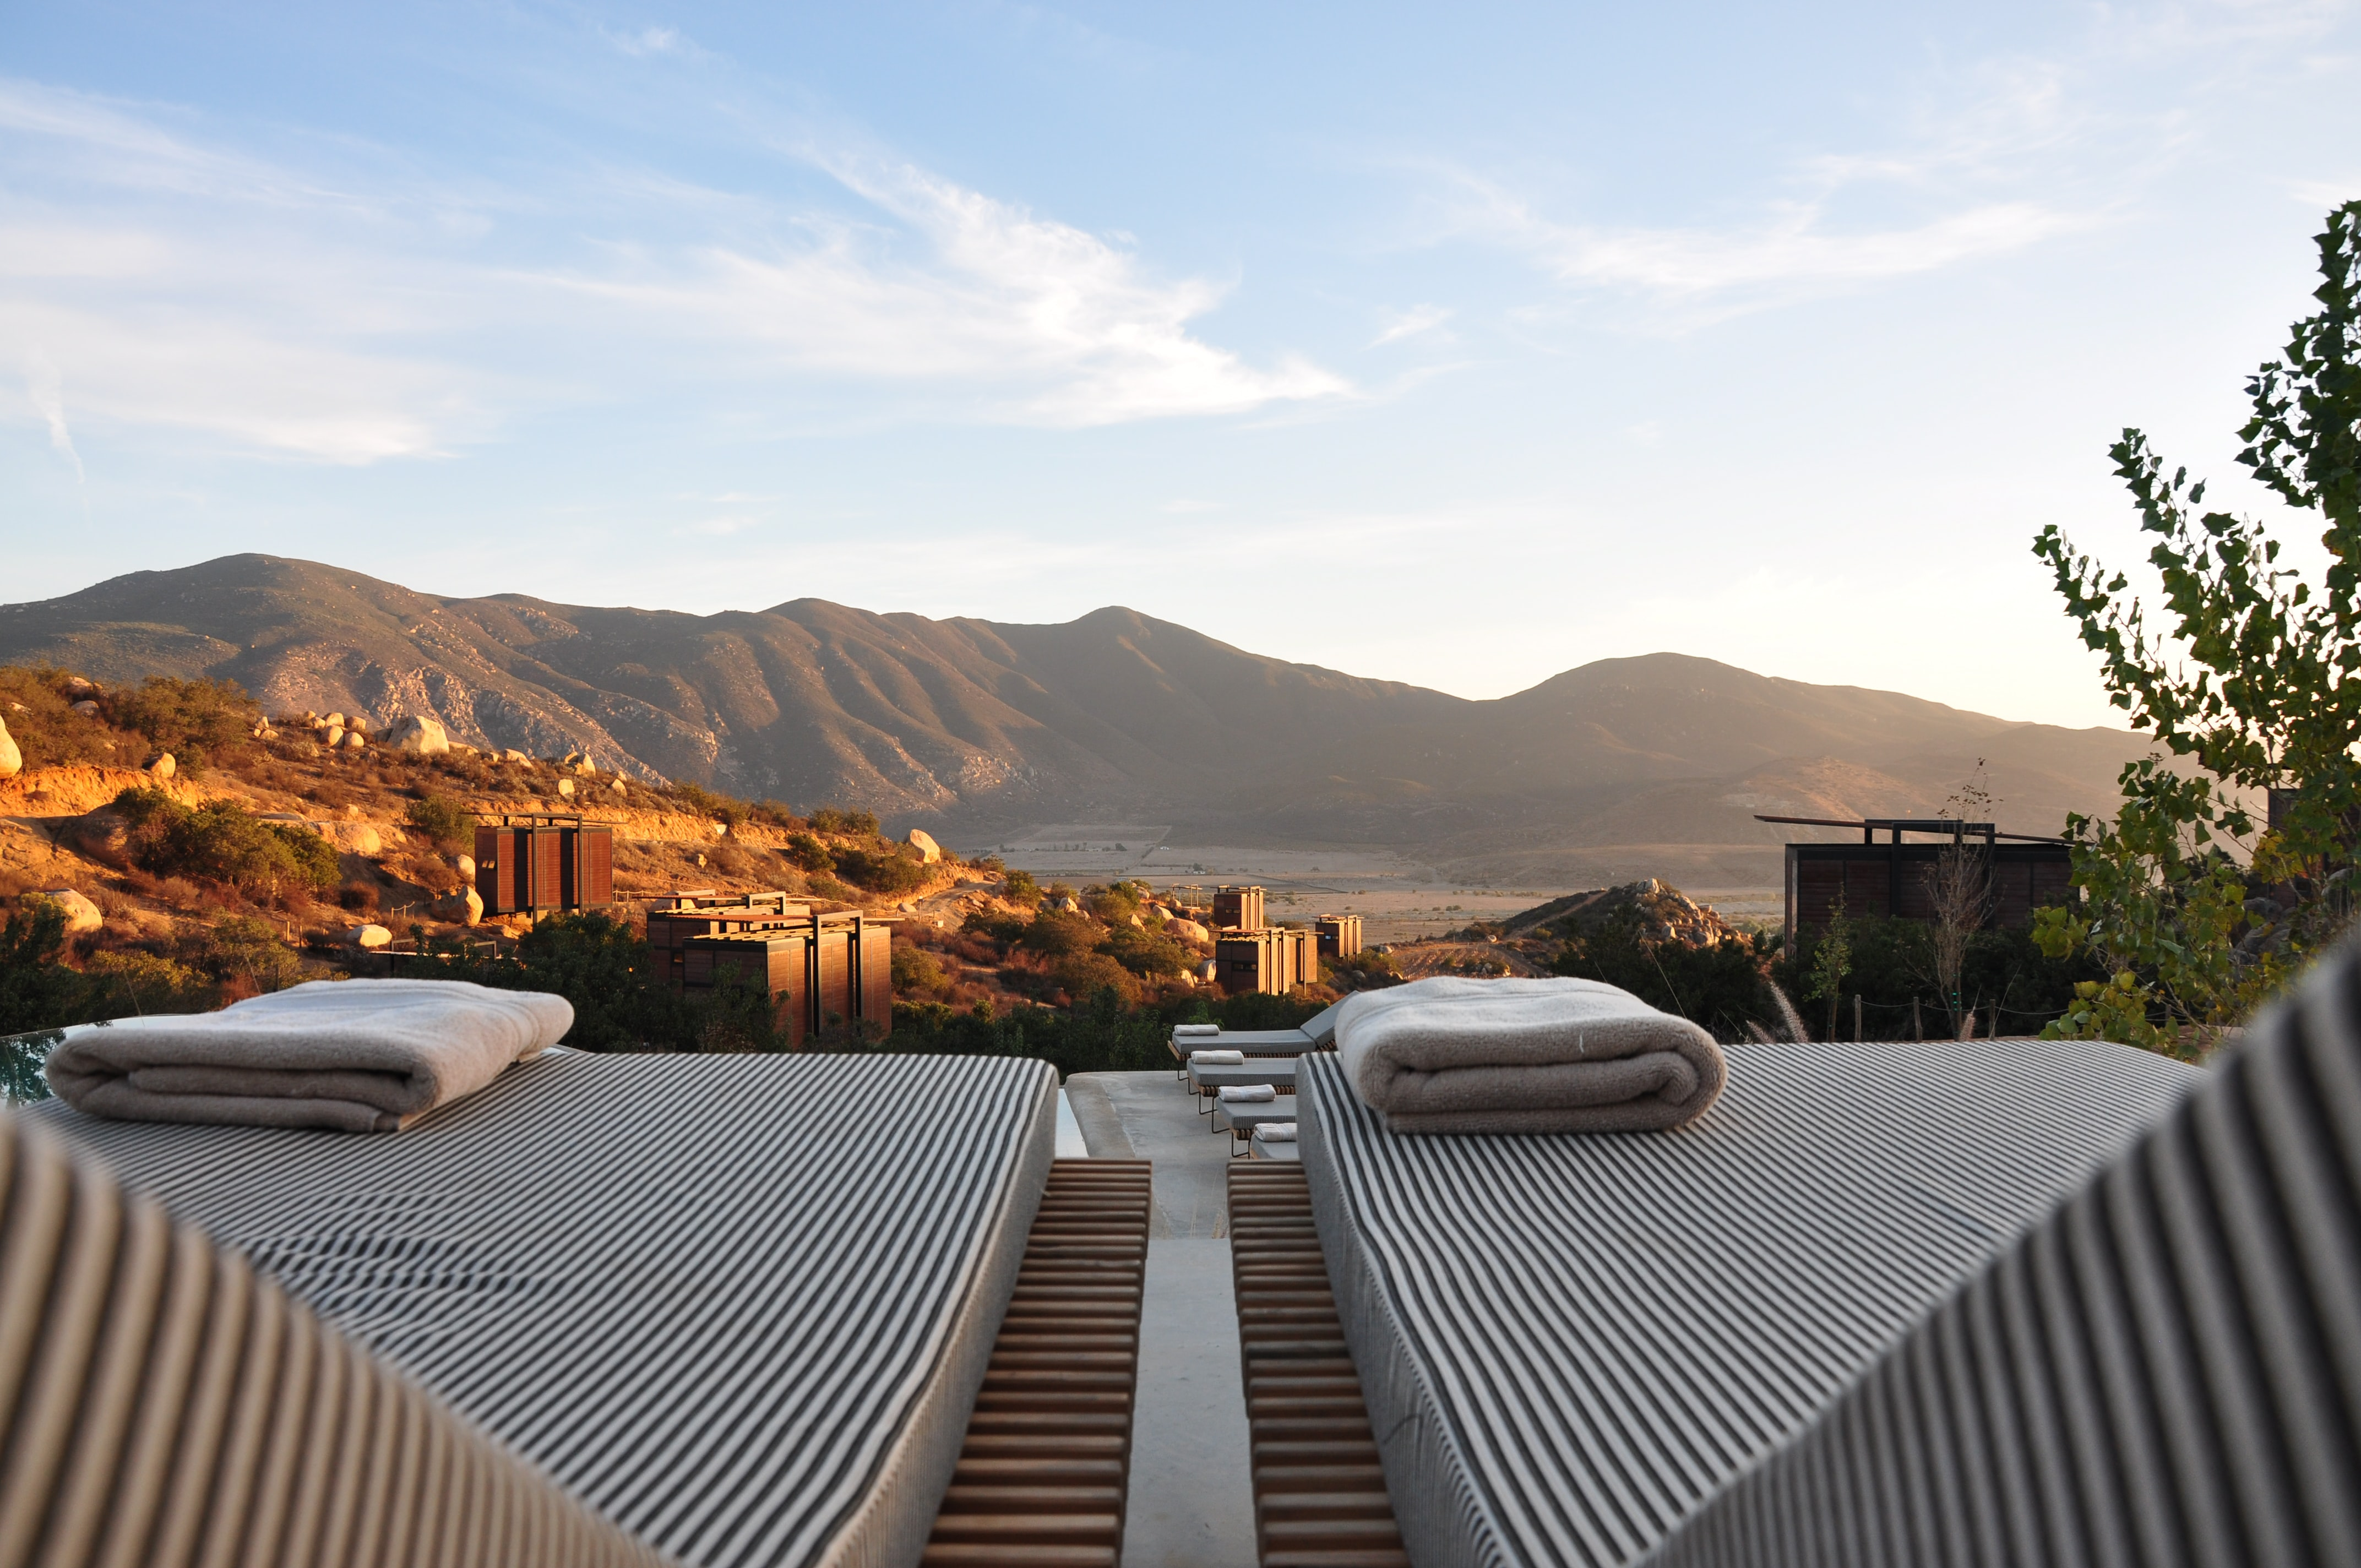 The Best Hotels in Mexico and South America: The Gold List 2021